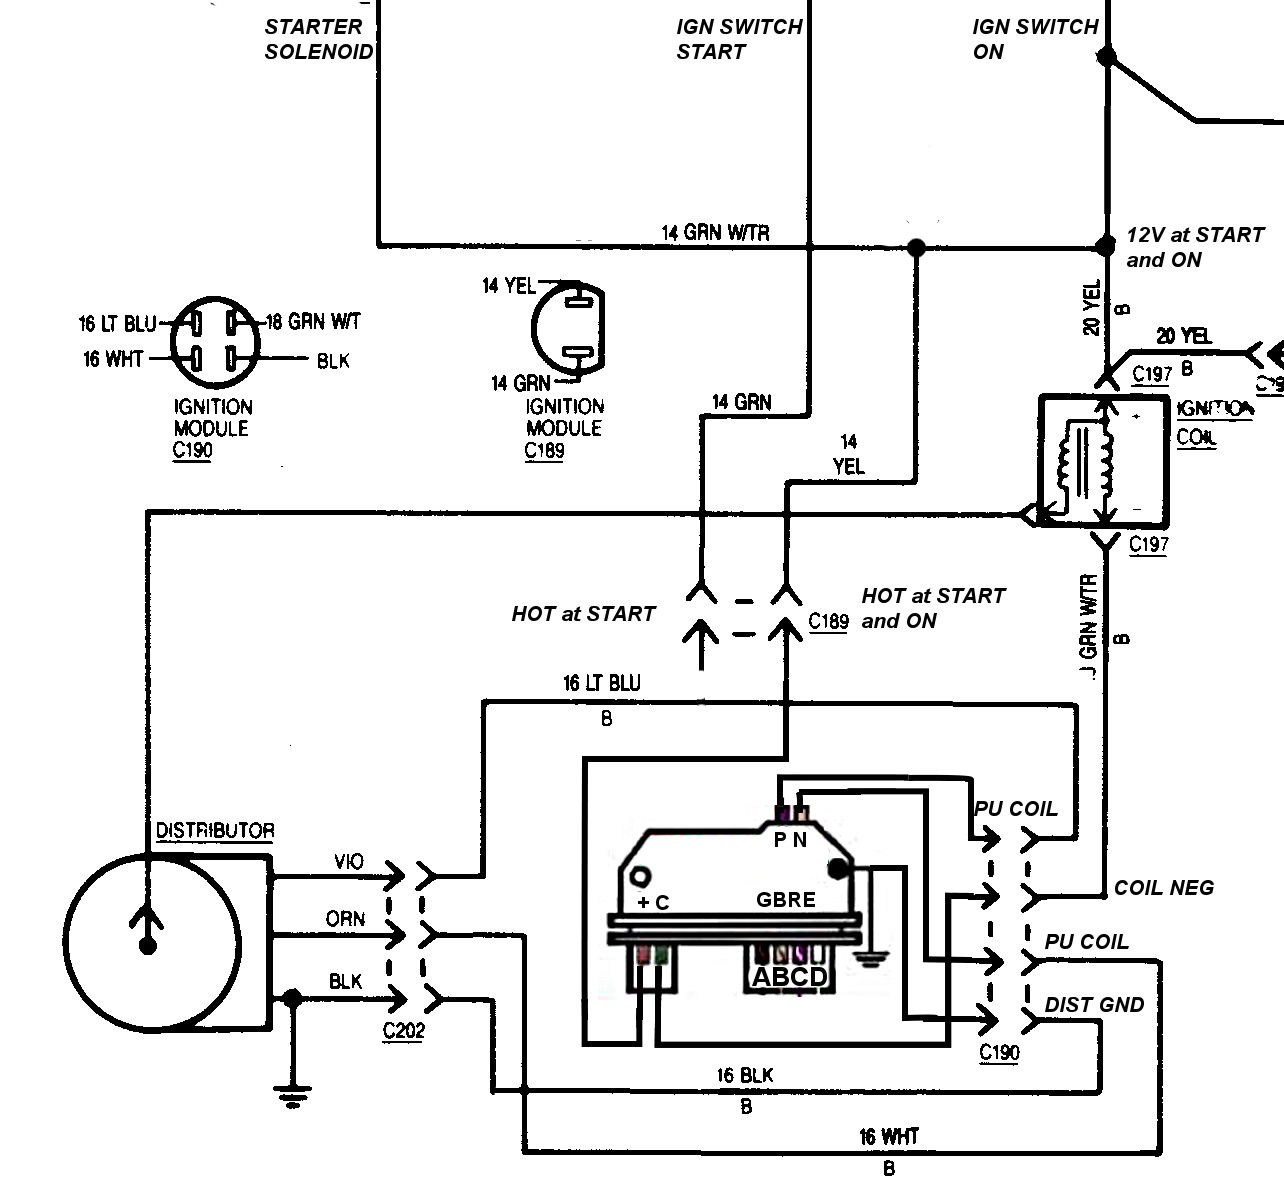 TBI+Wiring+1 ford duraspark wiring diagram ford ignition system wiring diagram ford 302 distributor wiring diagram at honlapkeszites.co